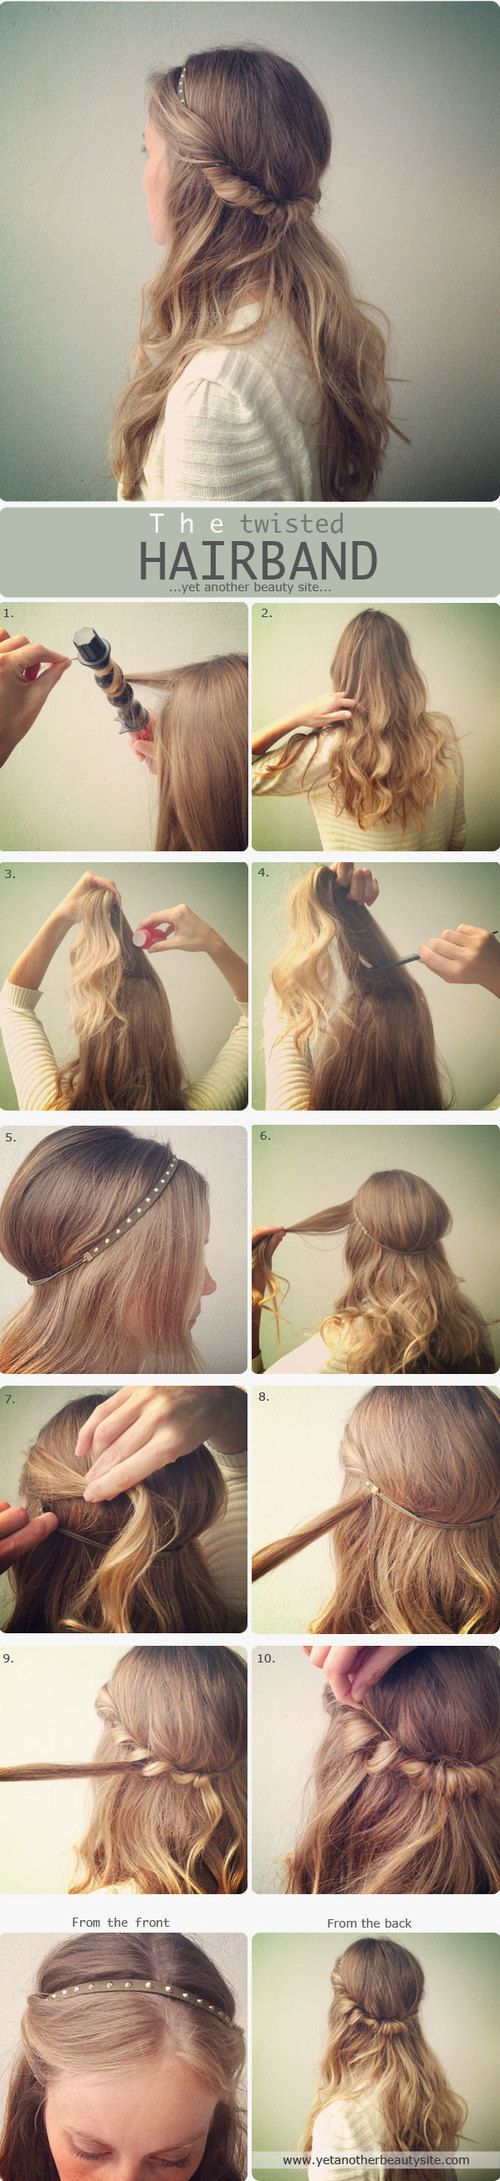 Best images about Hair on Pinterest Summer braids Chain